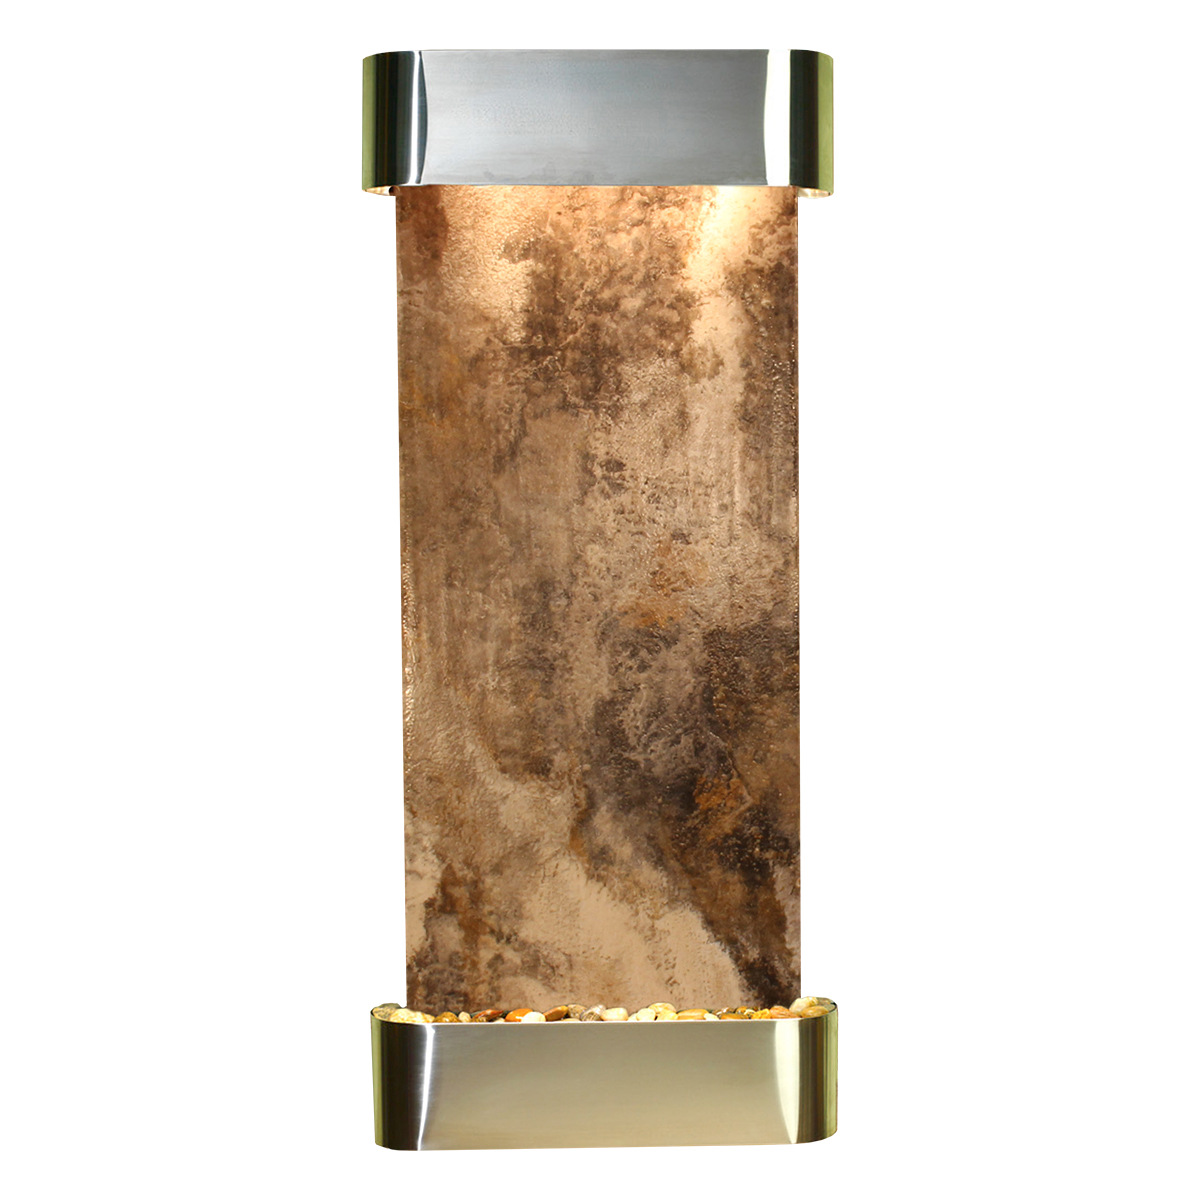 Inspiration Falls Fountain Rounded Travertine Photo